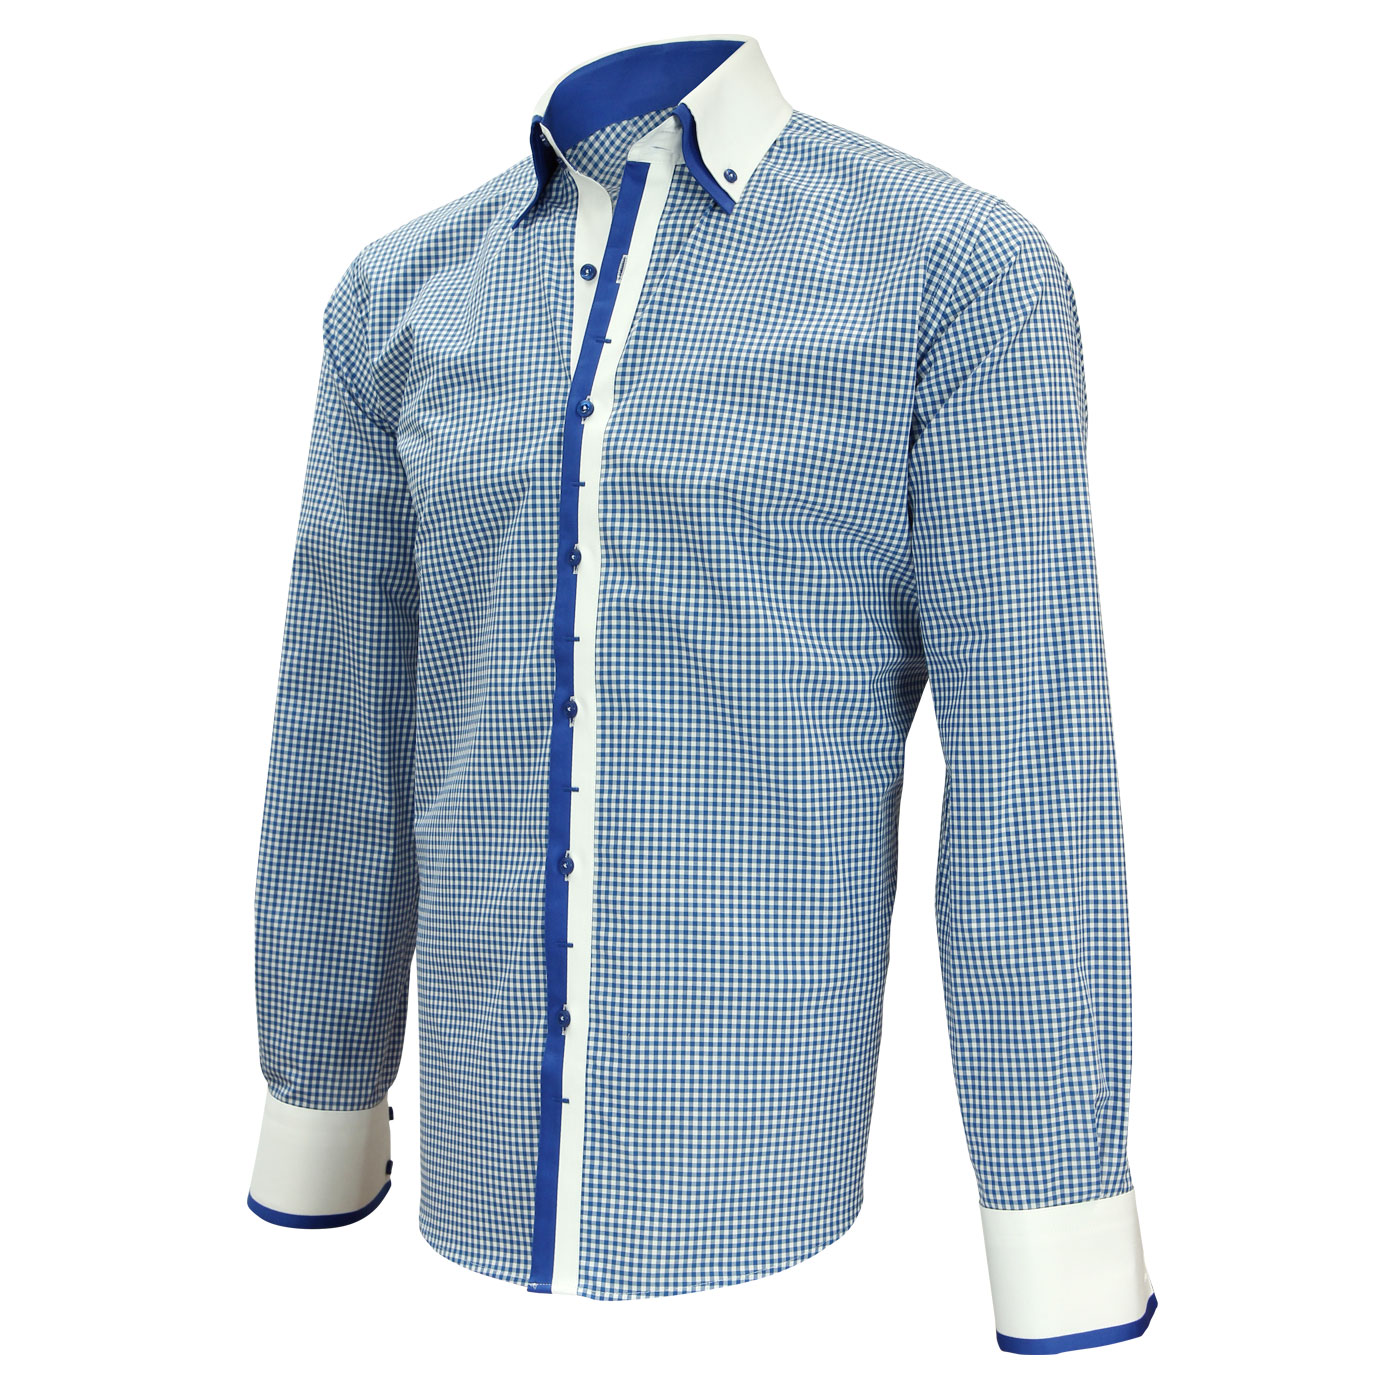 Double Collar Shirts Exclusive Models Webmenshirts